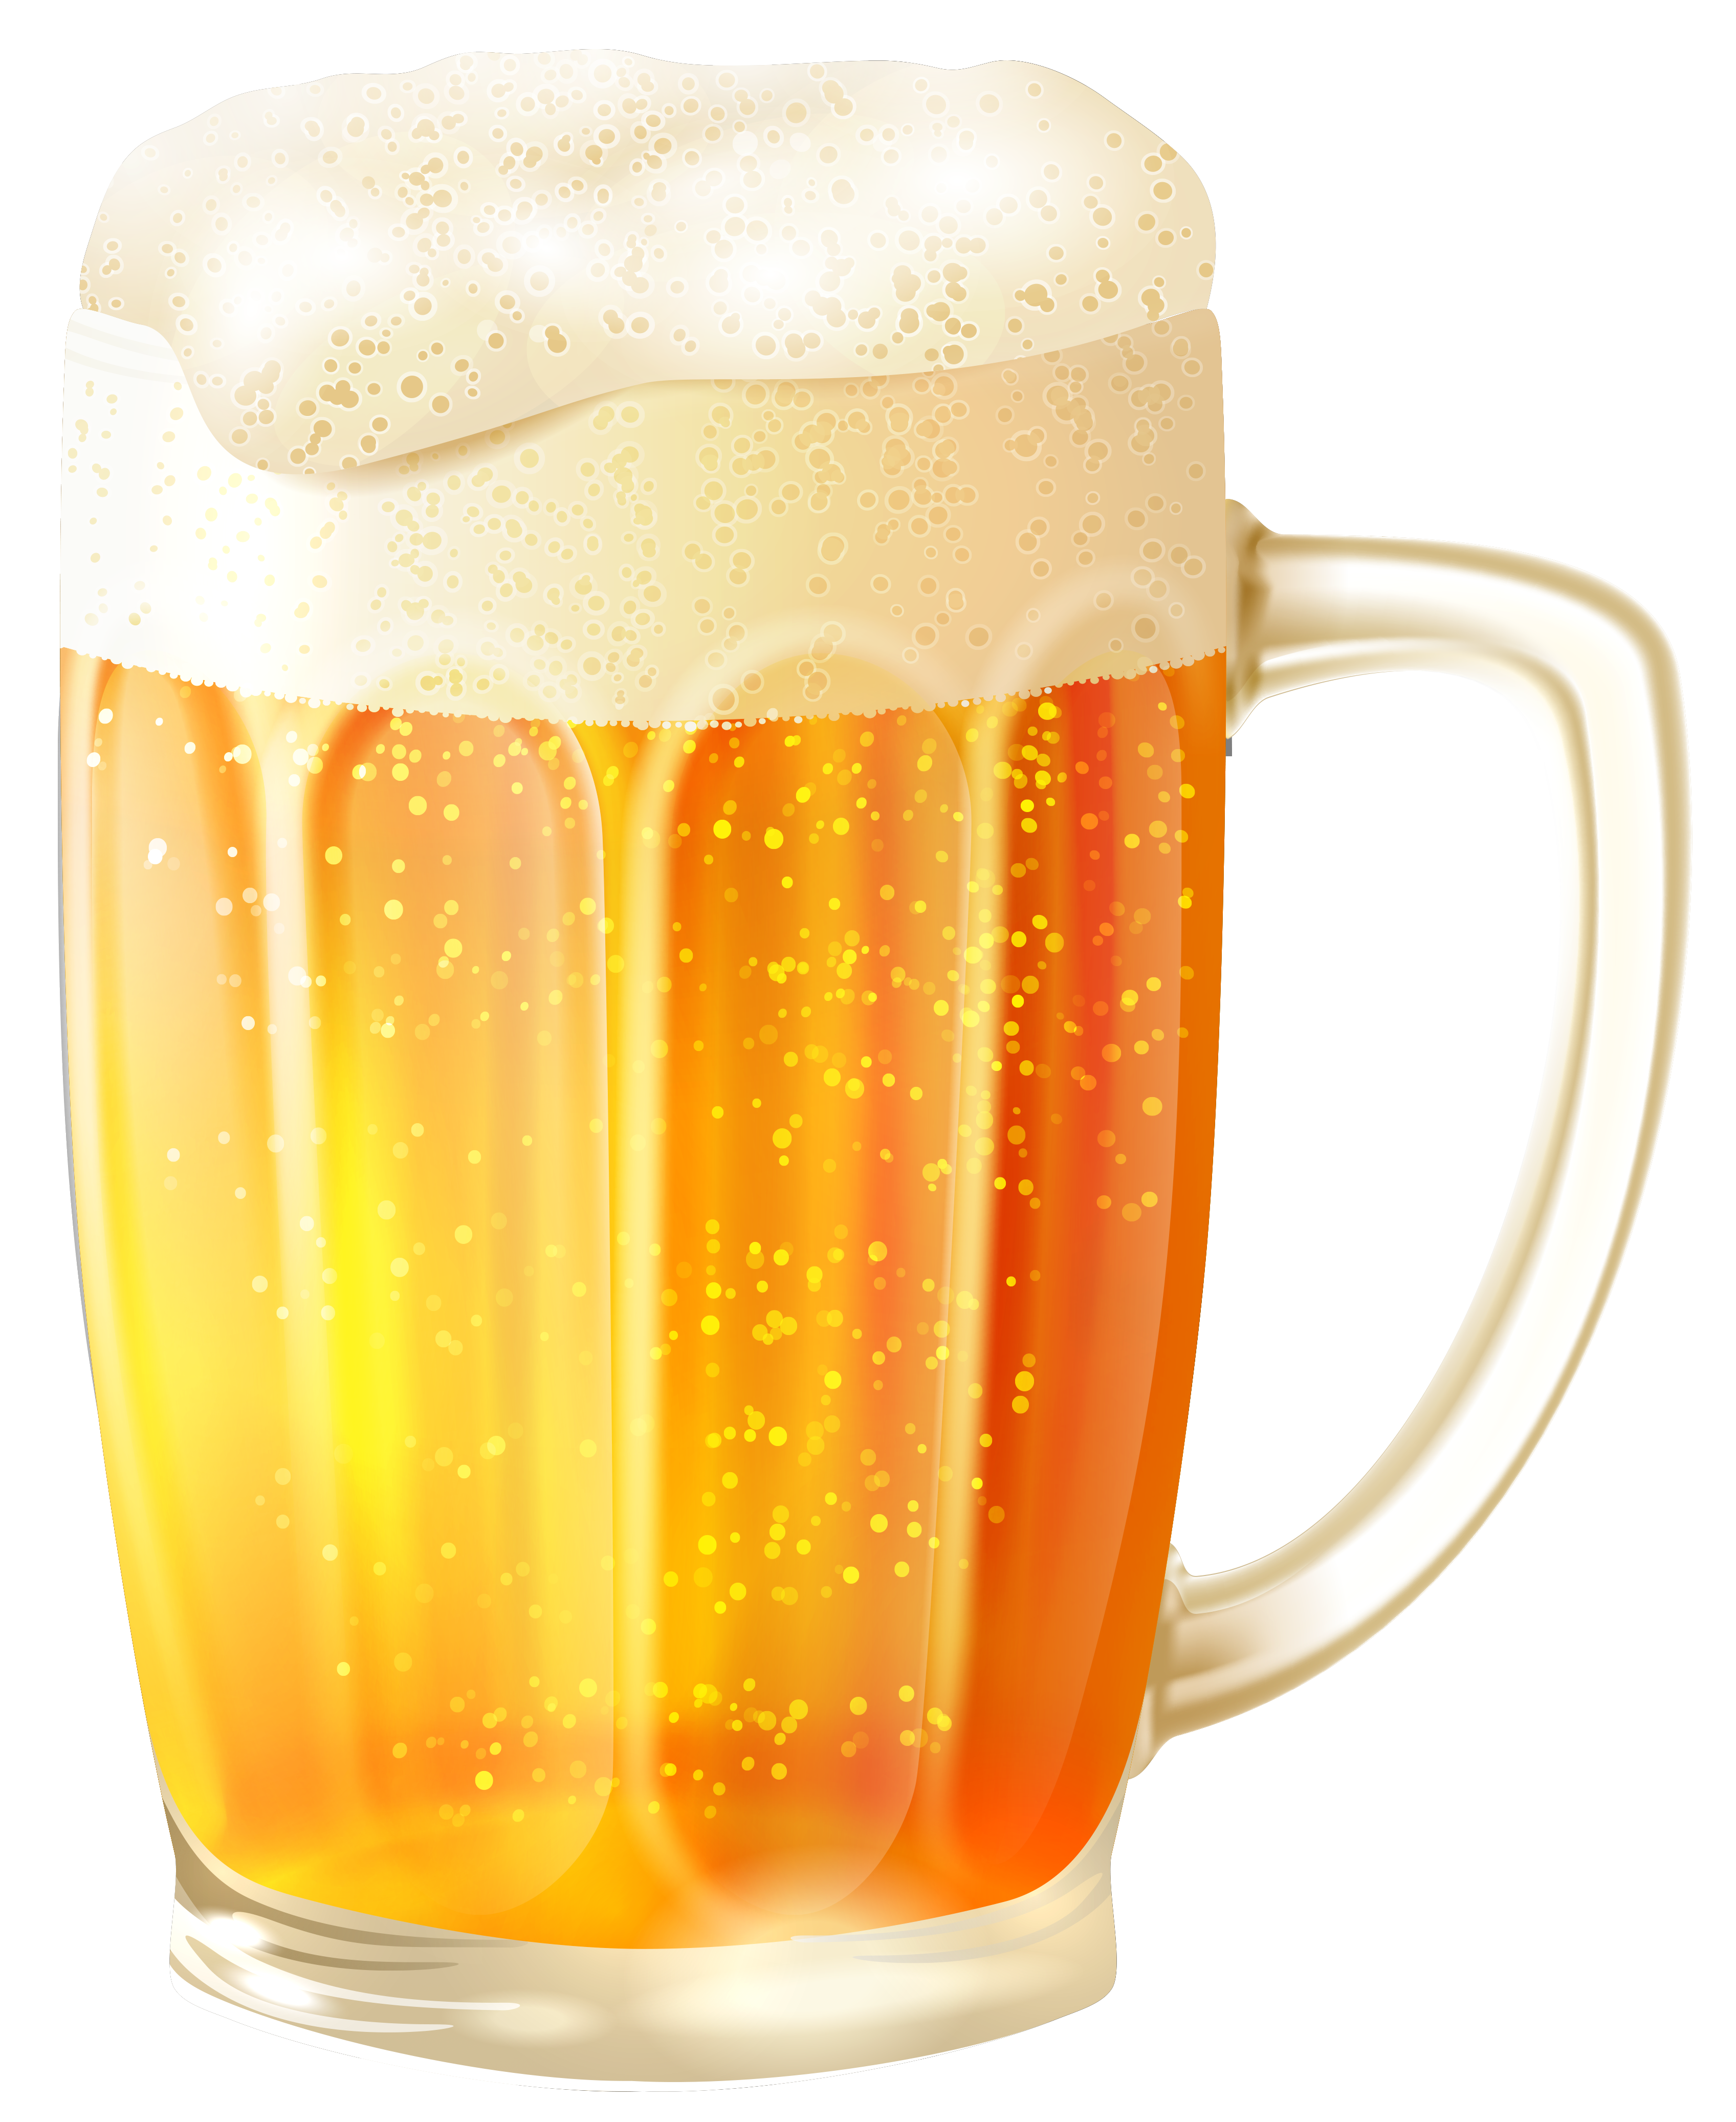 Shot glass vector png. Mug with beer clipart